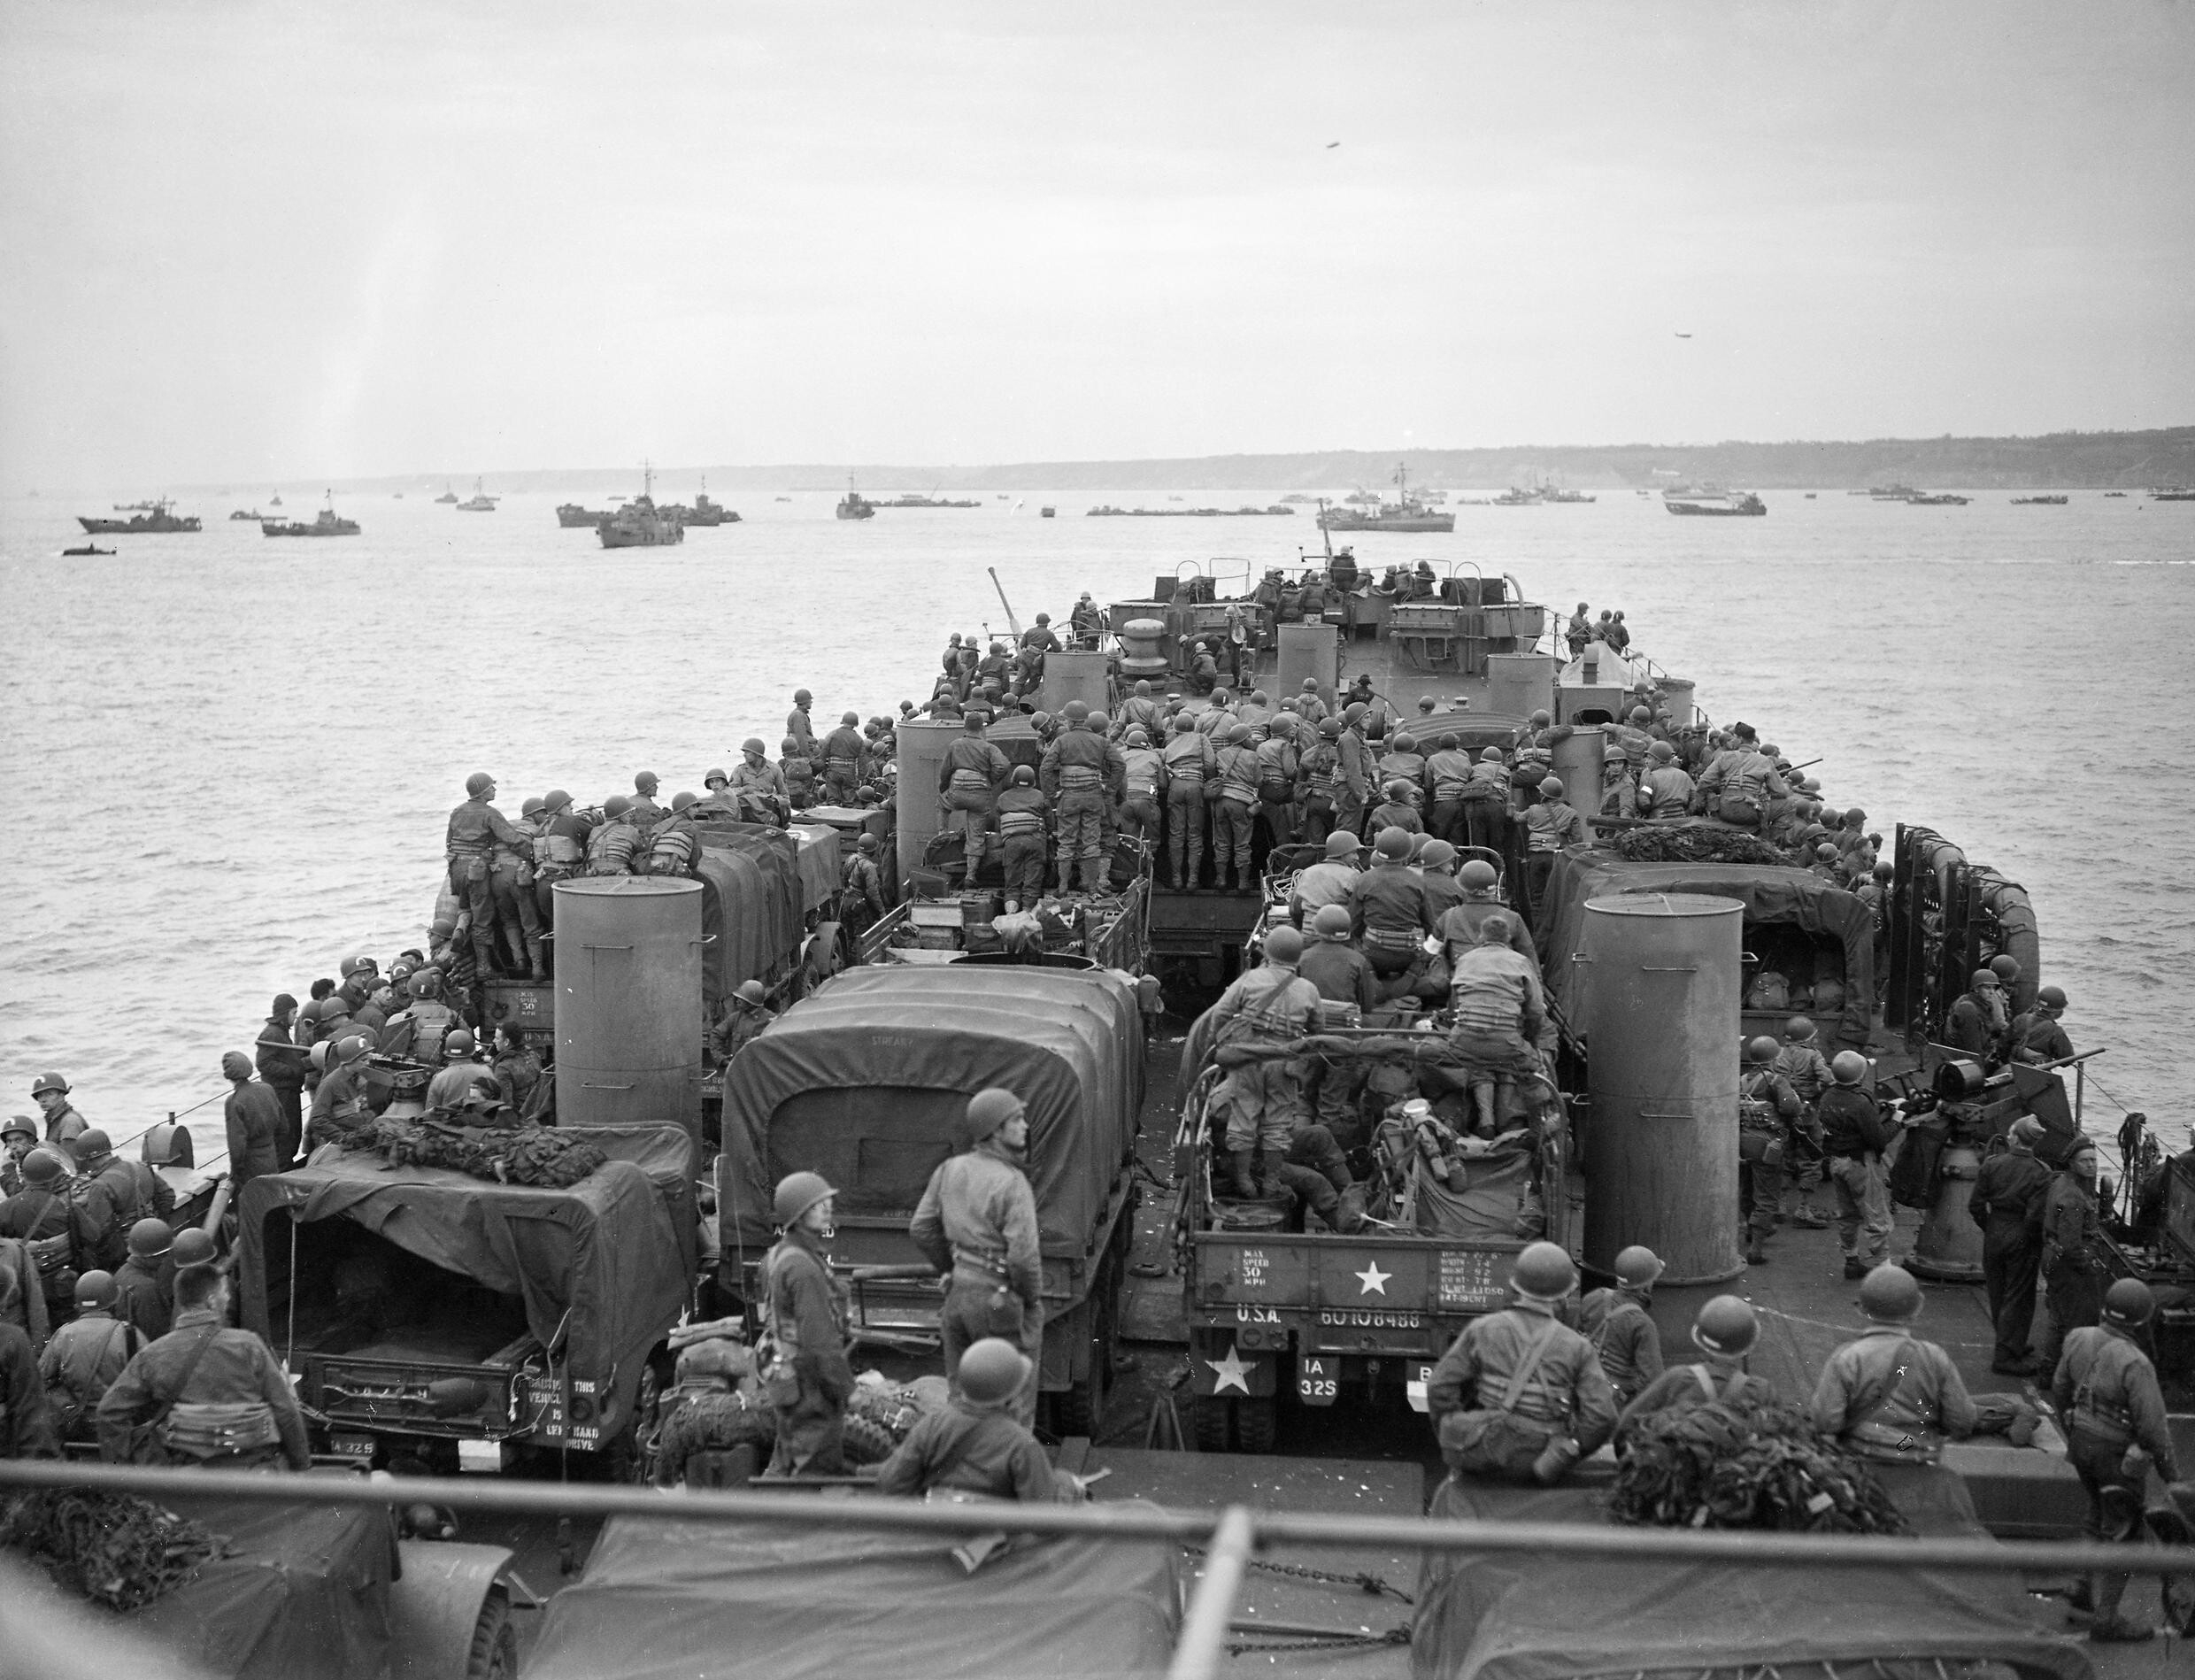 Filethe Royal Navy During The Second World War Operation